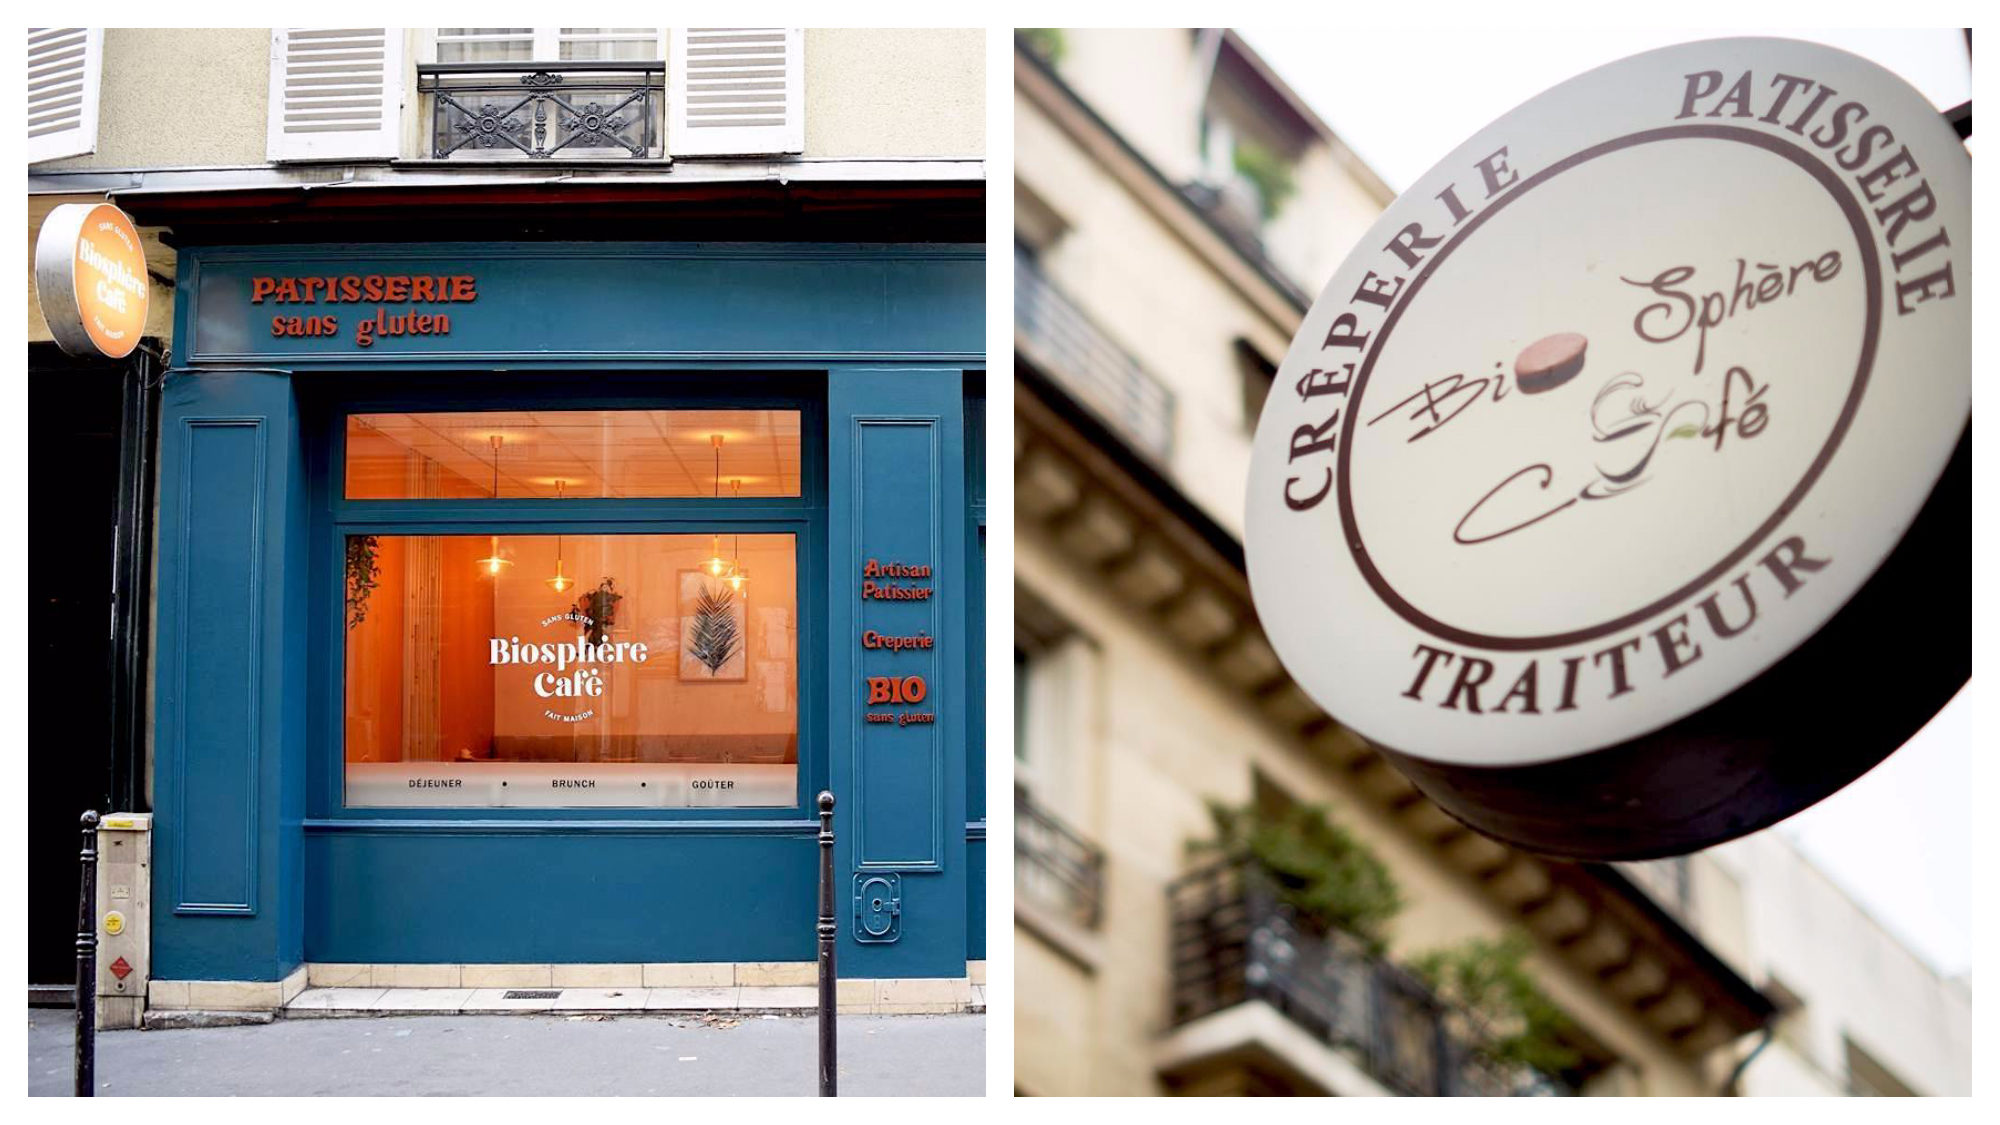 The blue exterior of the gluten-free patisserie in Paris, Biosphere (left) and the sign for gluten-free crepes also at Biosphere (right).